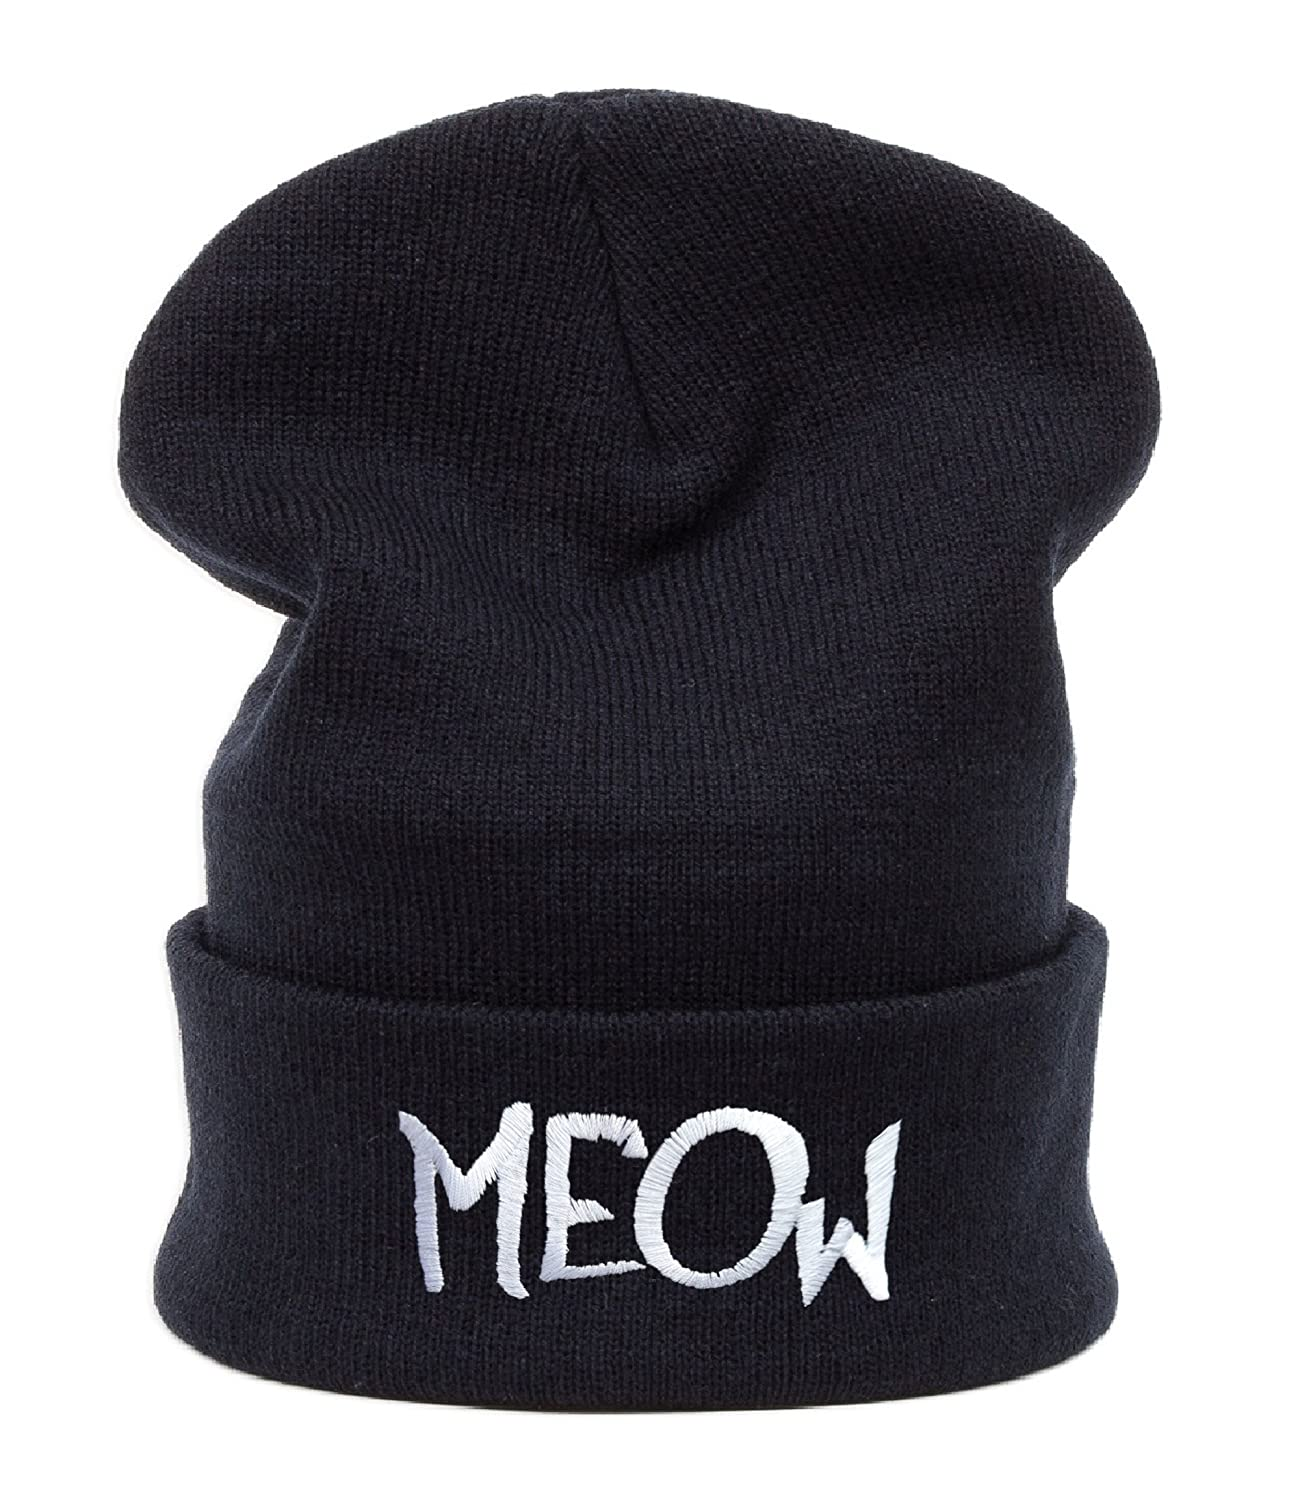 Beanie Mütze Damen Herren Bad Hair Day Easy Witch Trill Bastard Meow Swag Wasted DIE Fake Meow Commes des 1994 HAT HATS, Morefazltd (TM) (Meow)